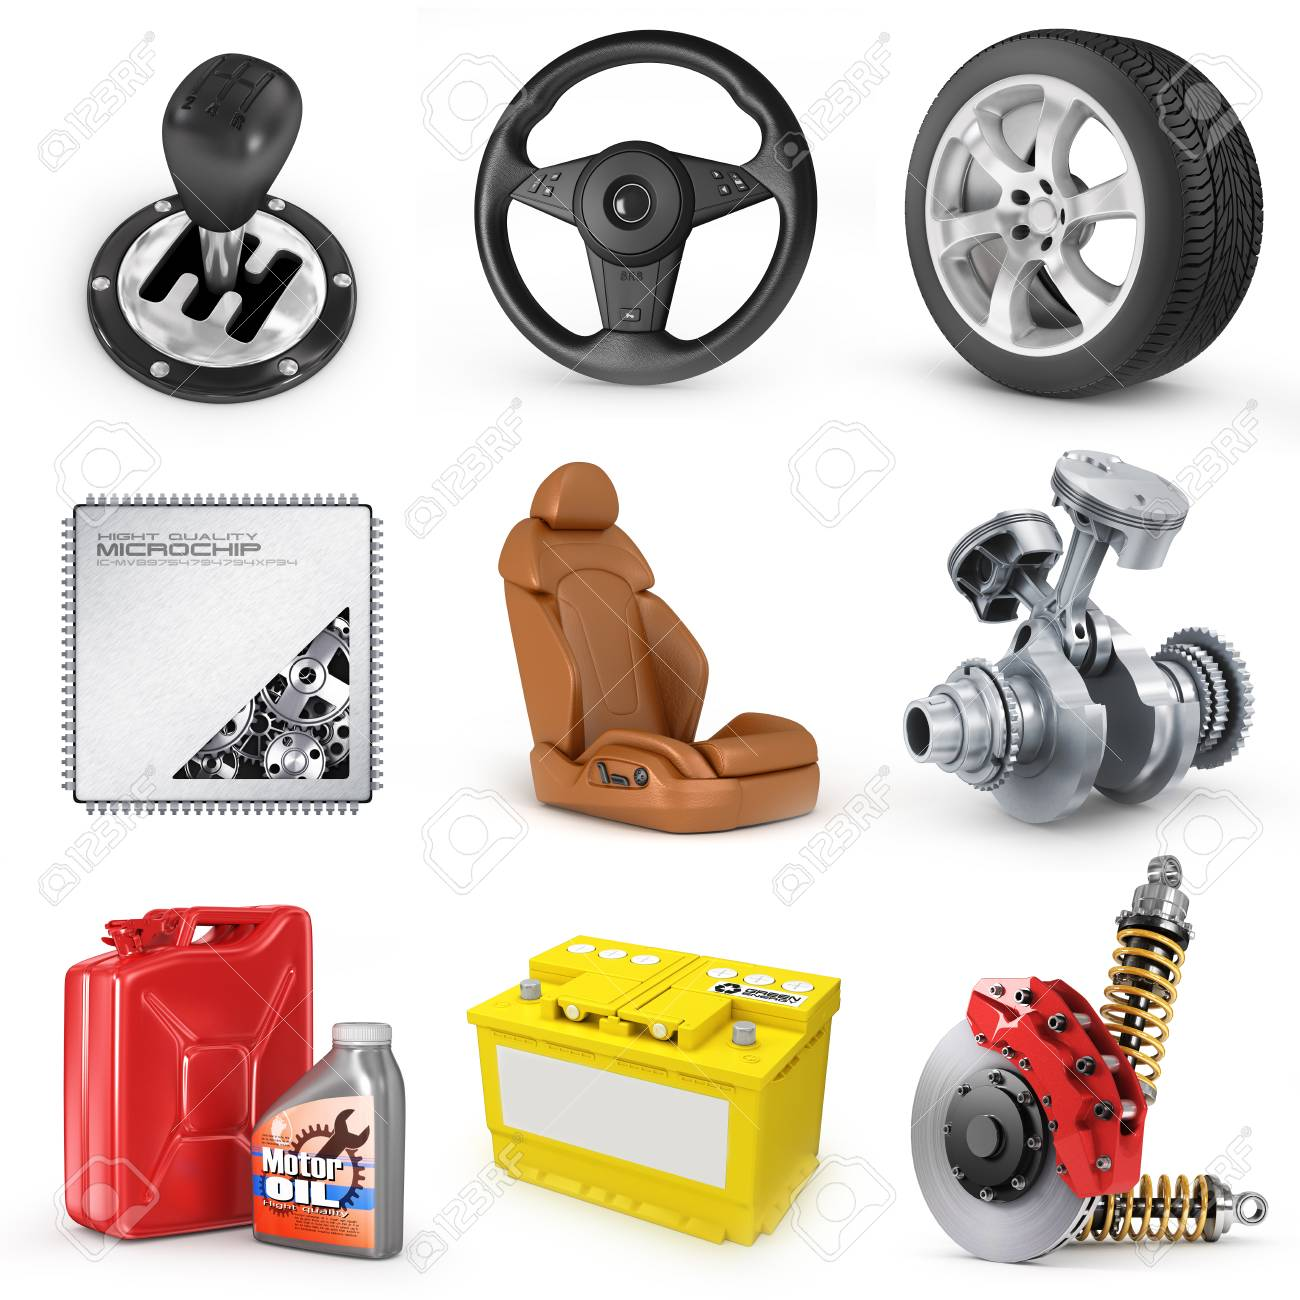 Set Of Parts Of Car 3d Render Icons Stock Photo Picture And Royalty Free Image Image 32959897